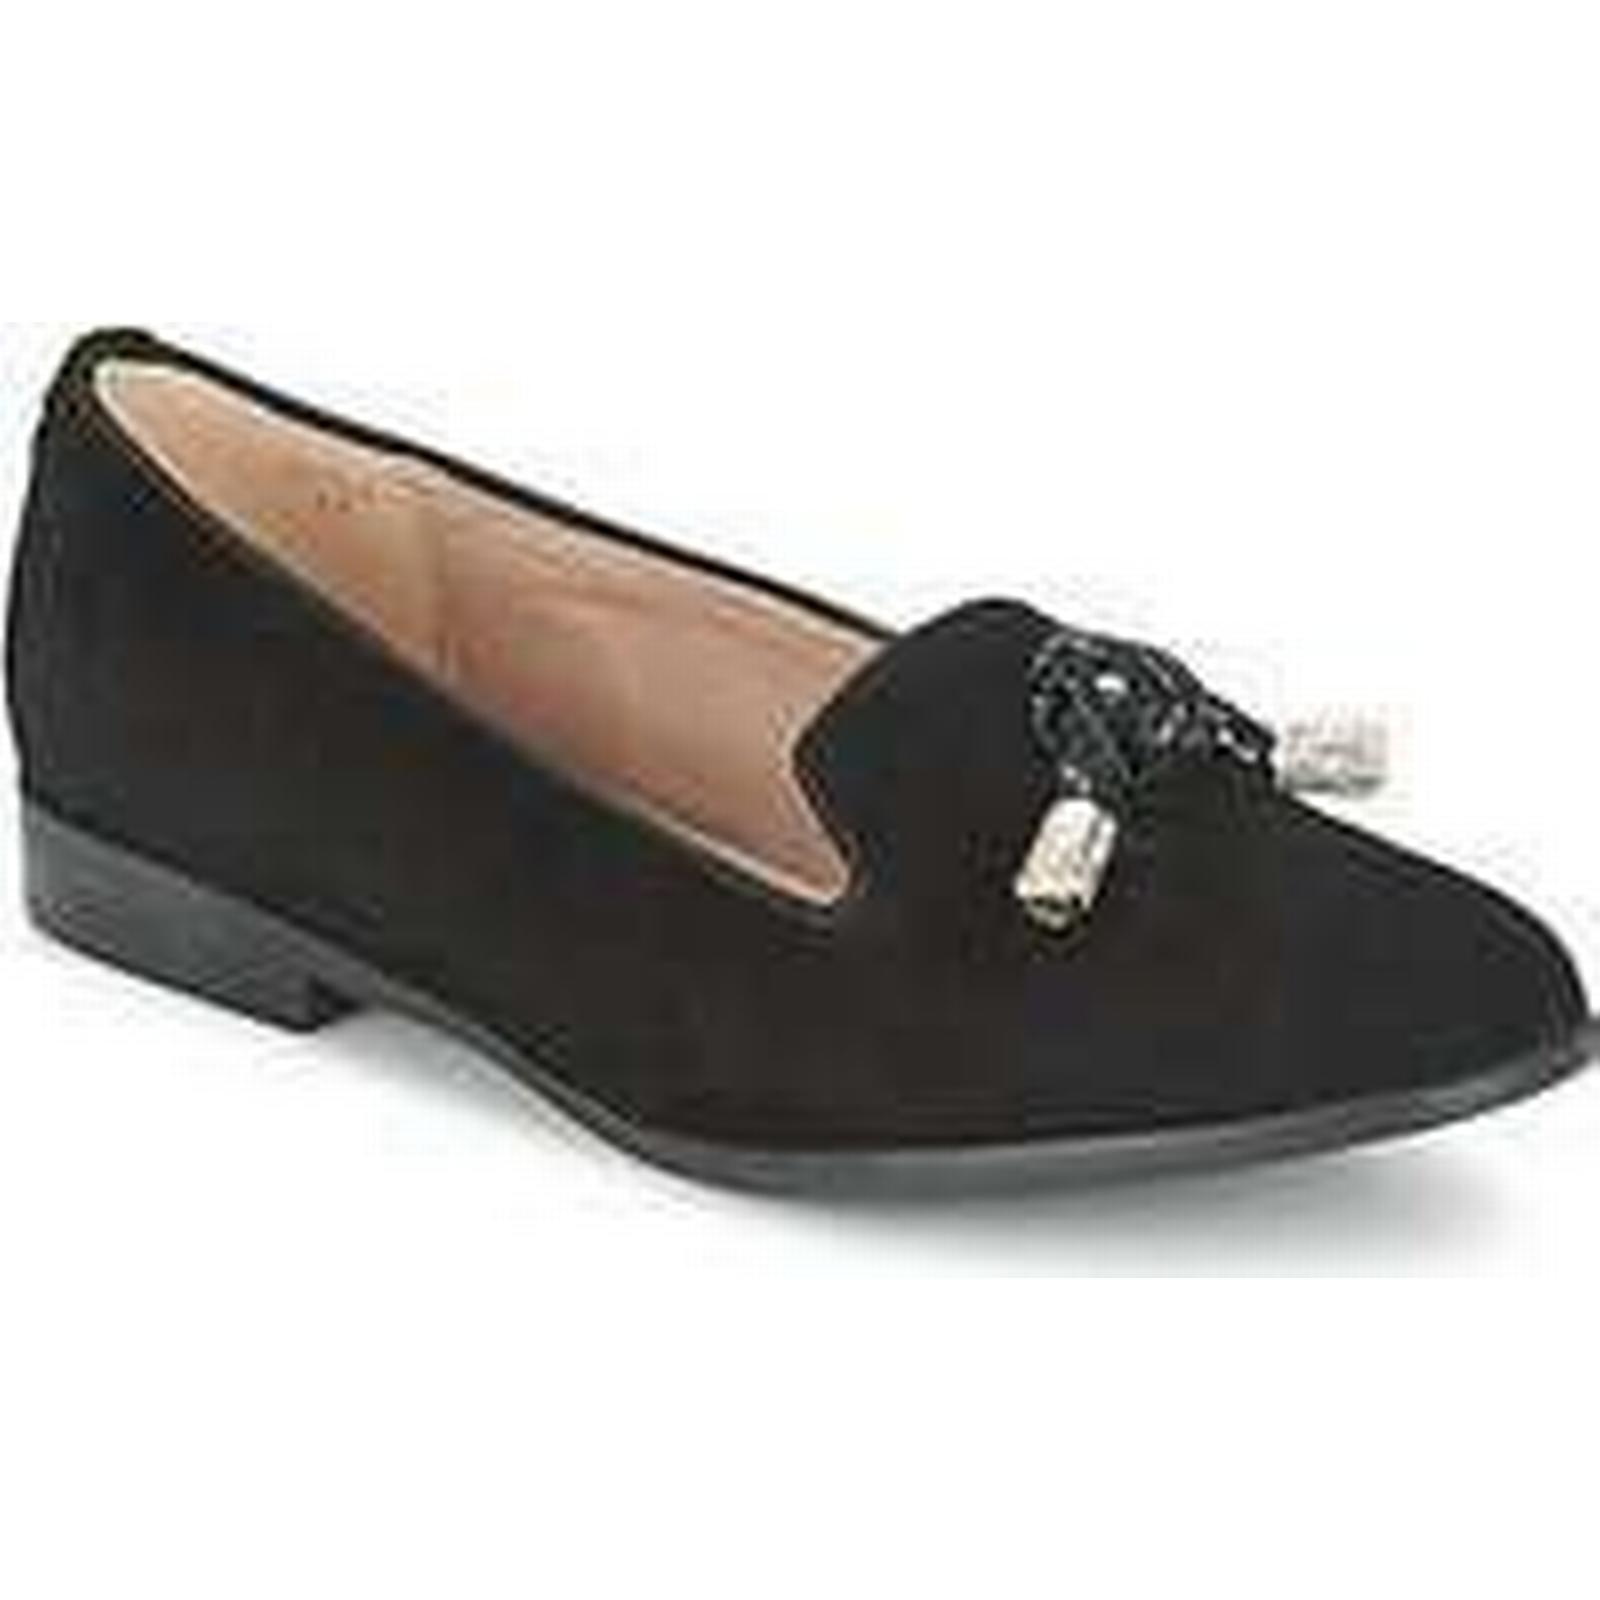 Spartoo.co.uk Moda In Pelle Casual ENOLA women's Loafers / Casual Pelle Shoes in Black 49e1a9